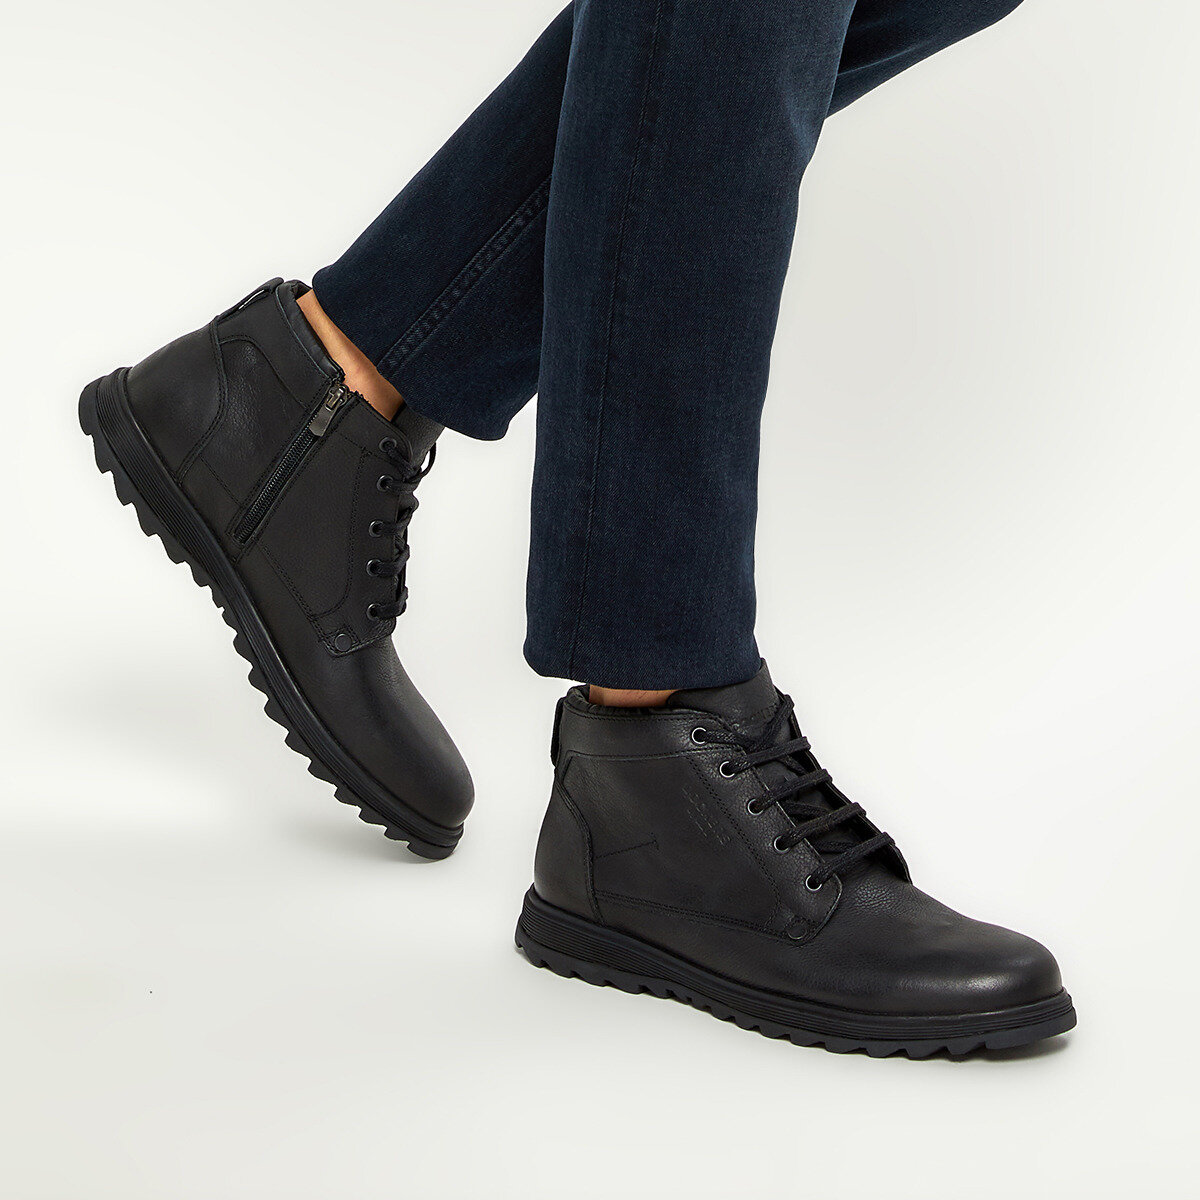 FLO 227146 9PR Black Men Boots By Dockers The Gerle